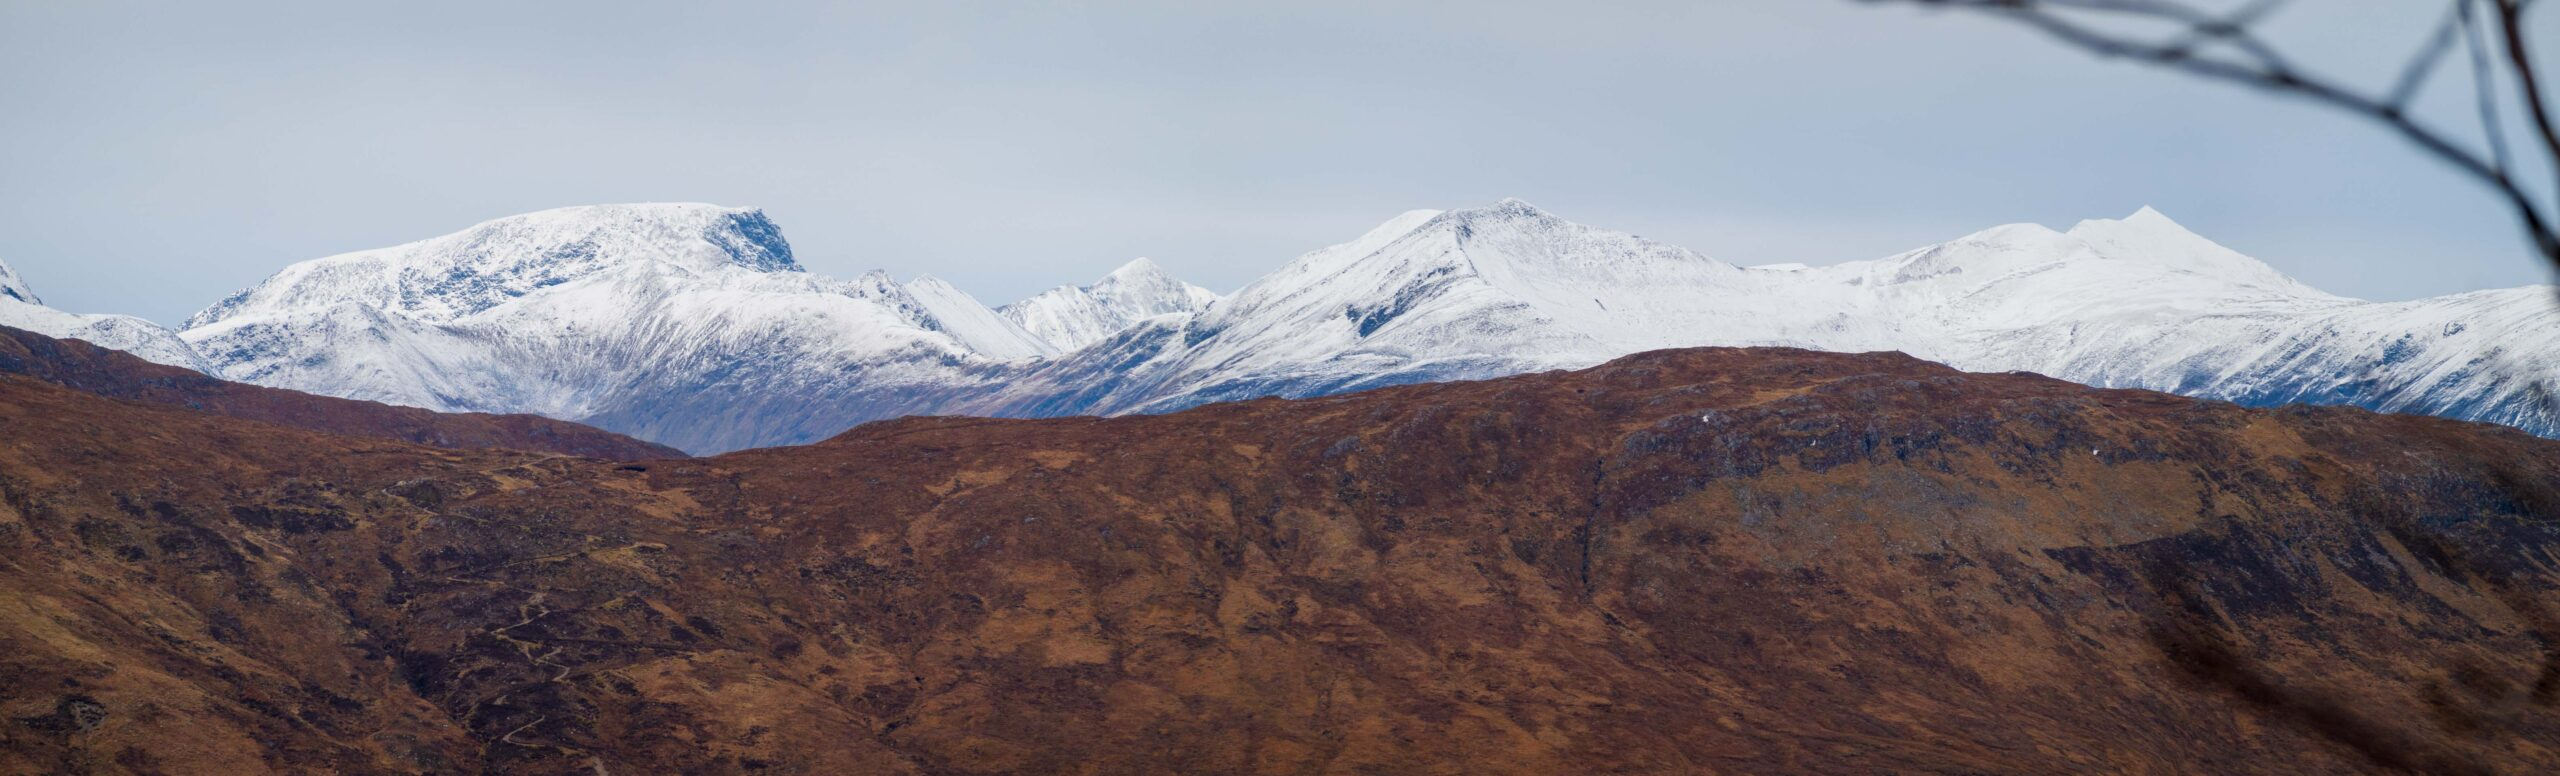 Ben Nevis from Glencoe with the Devils Staircase in the midground